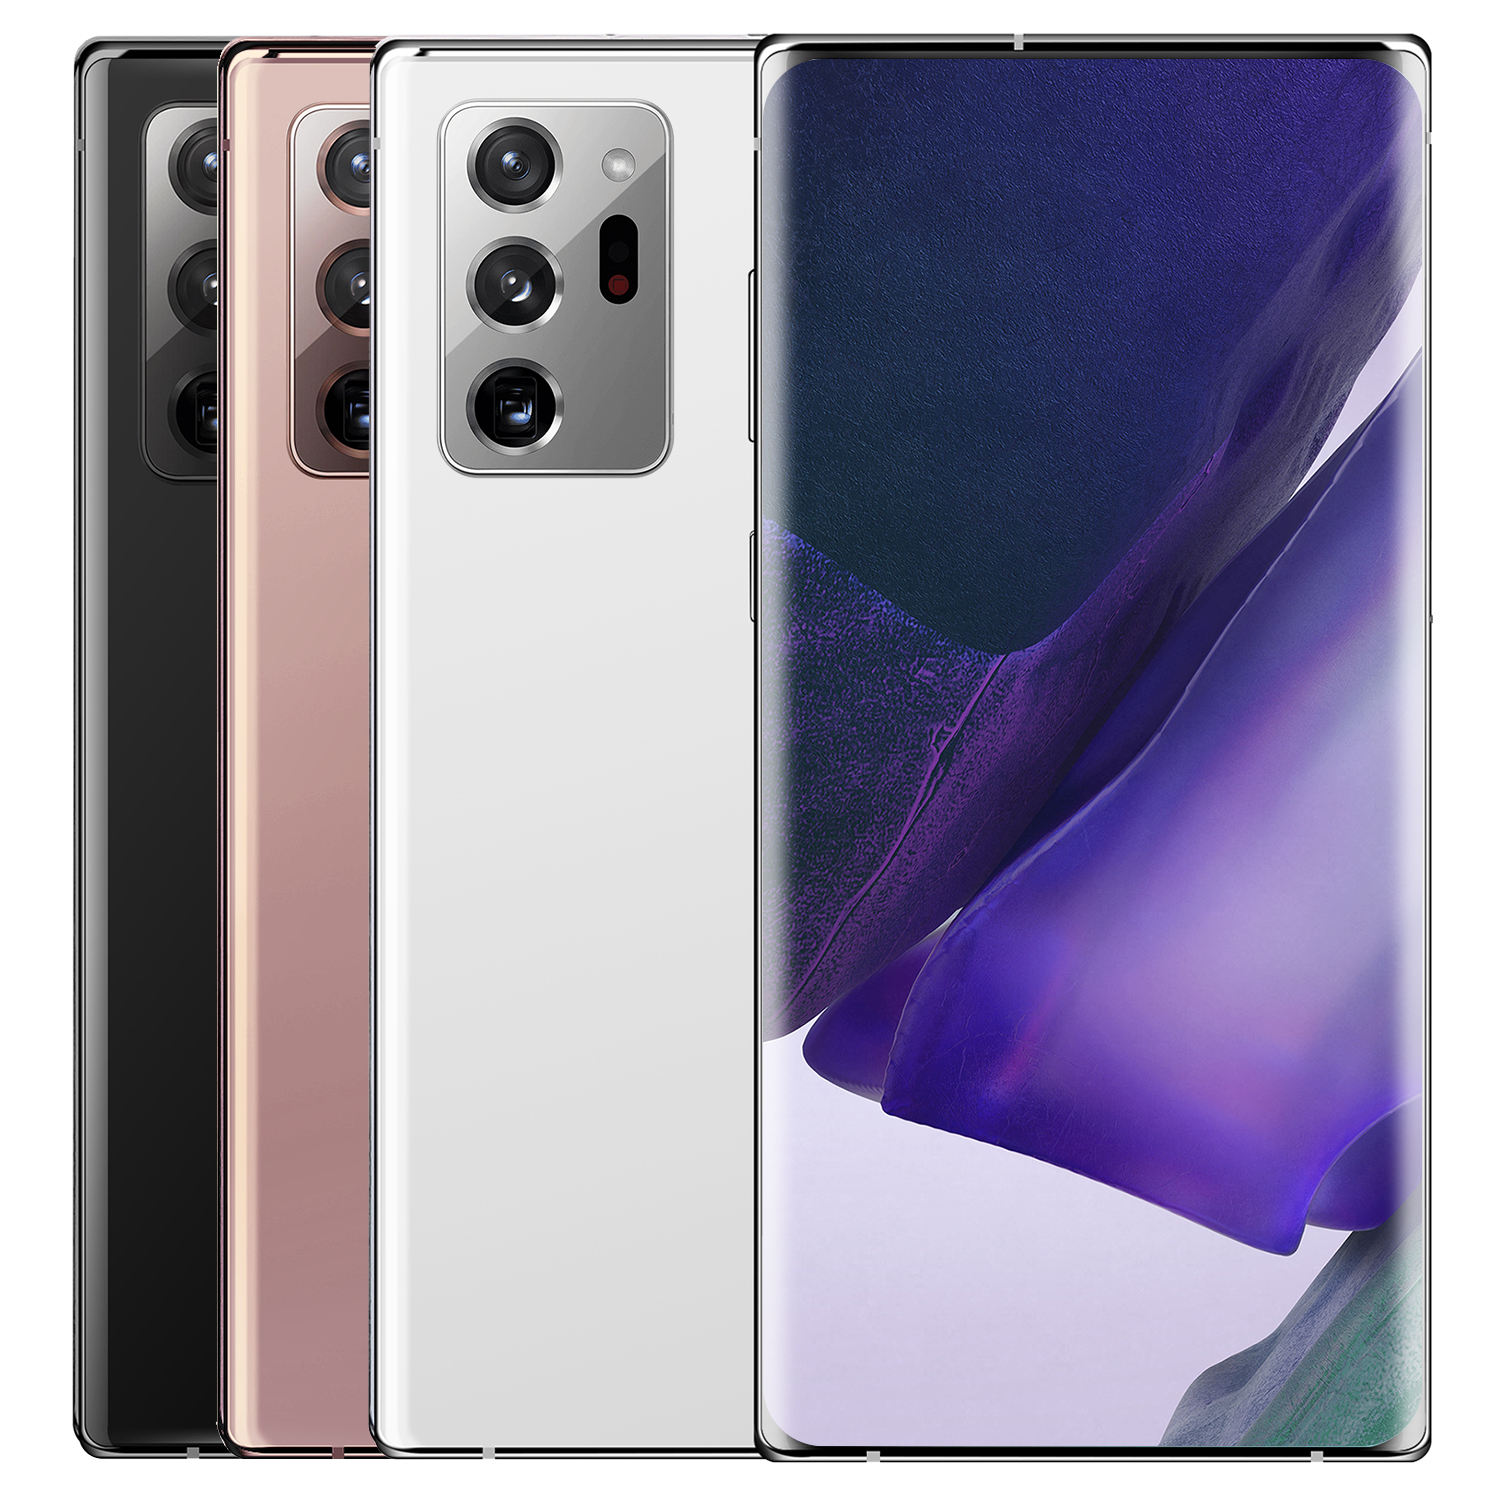 Mode günstigen <span class=keywords><strong>Preis</strong></span> N20U Android 10Core Smartphone 12GB 512GB Kamera 24MP 48MP 6.9 ''Full Incell Bildschirm 5500mAh